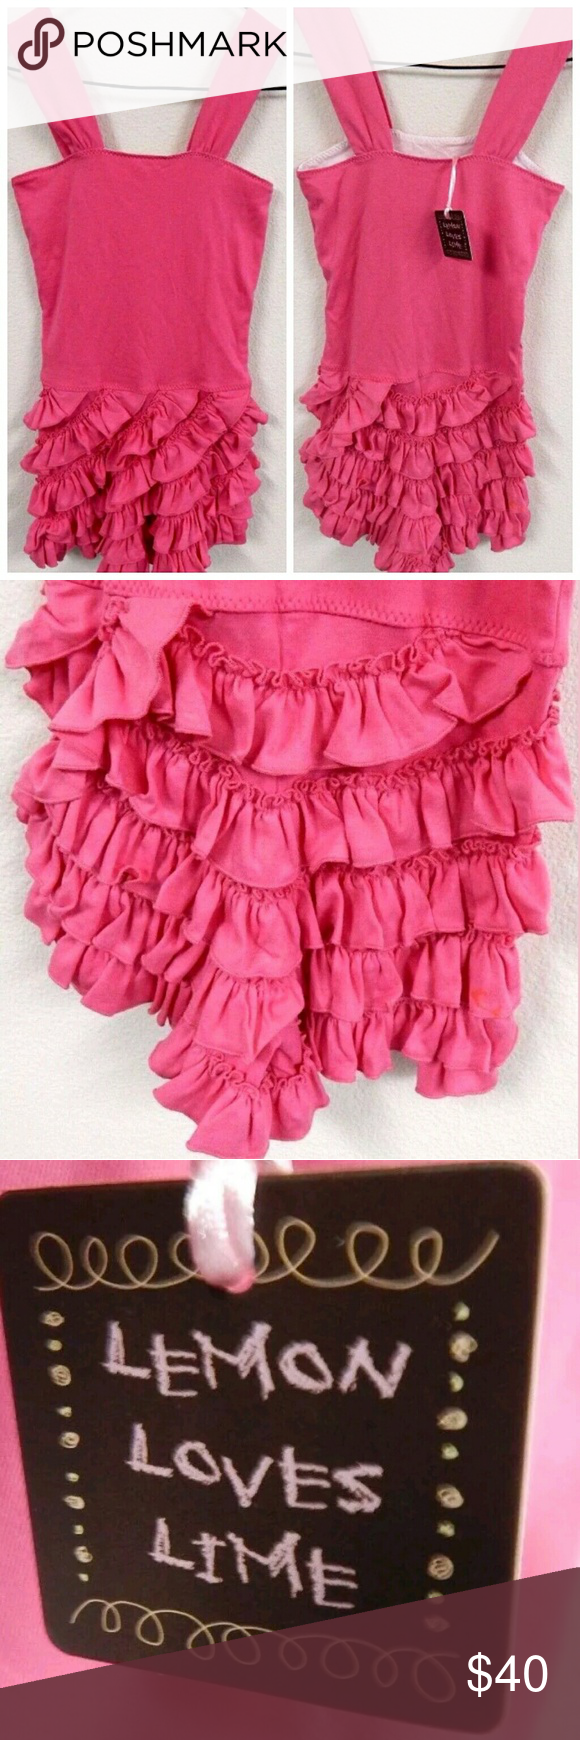 Lemon Loves Lime Pink Ruffle Sundress Adorable girls dress by lemon loves lime. Size 7 years. Never worn but does have minor snags from storage. Perfect for any girlie girl! lemon loves lime Dresses Casual